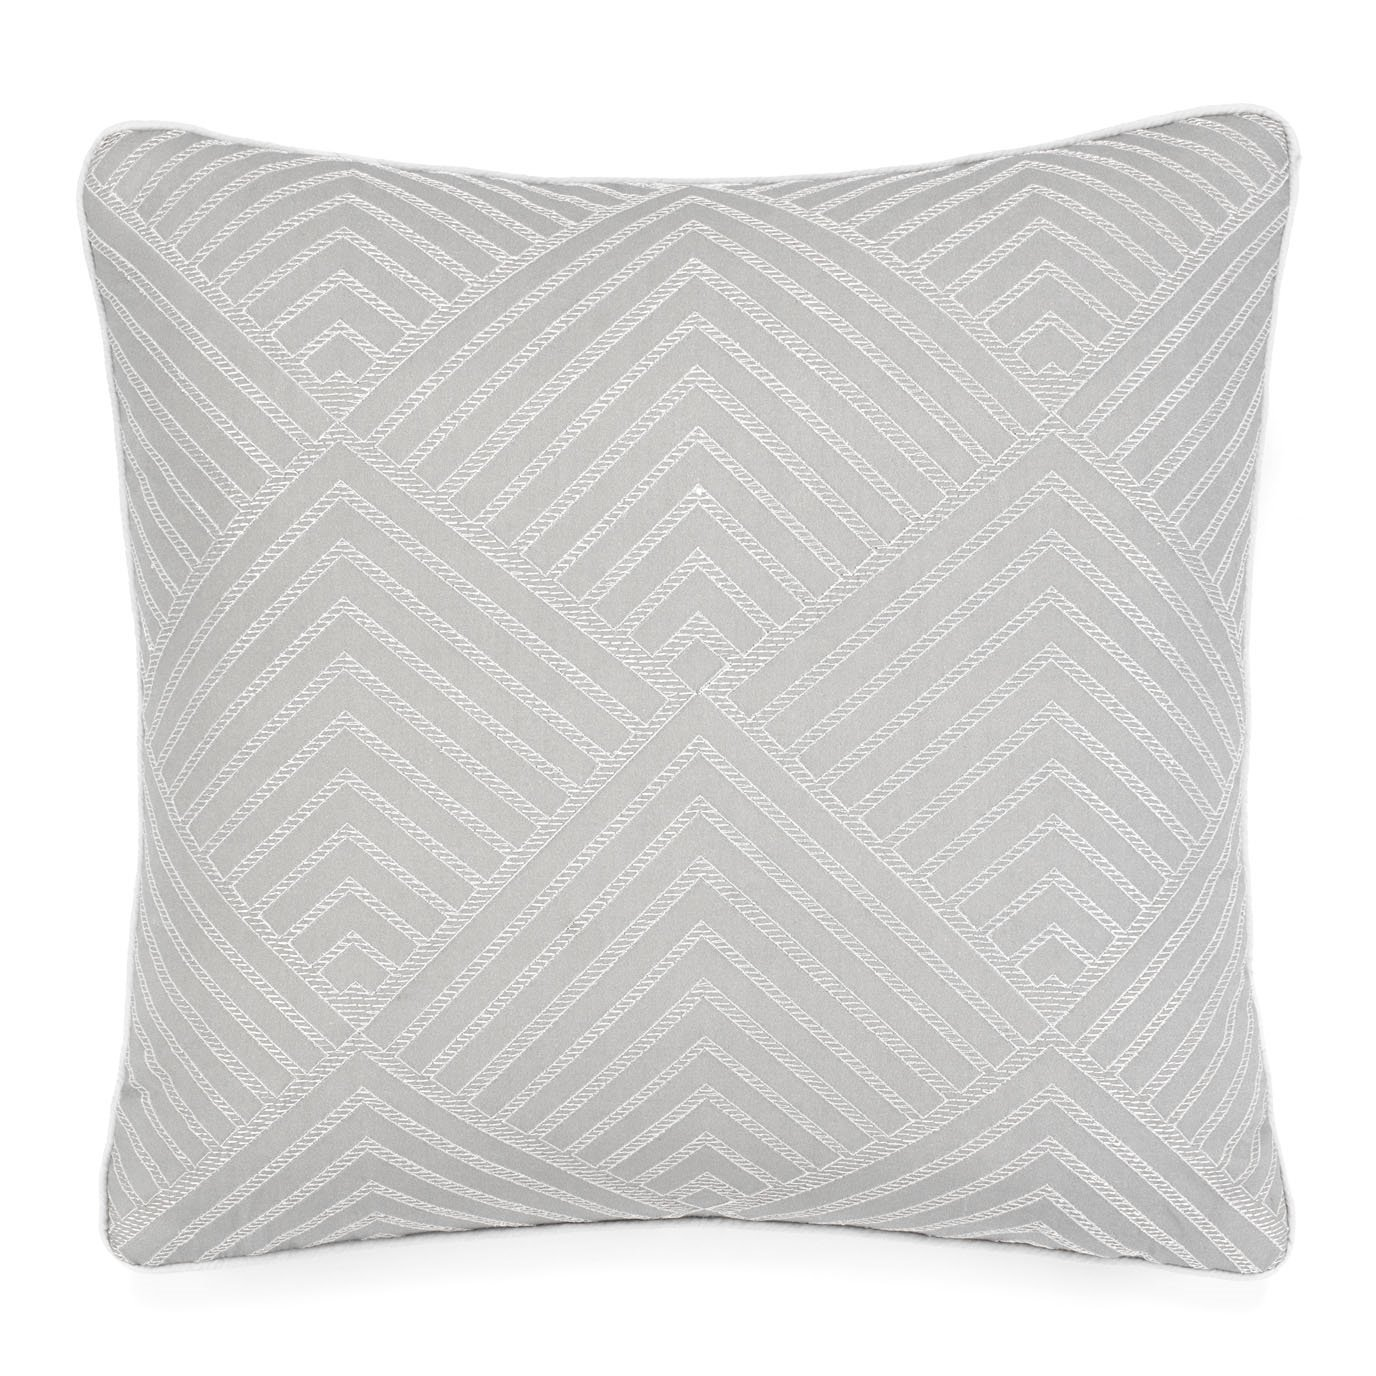 Normandy 16X16  Decorative Pillow